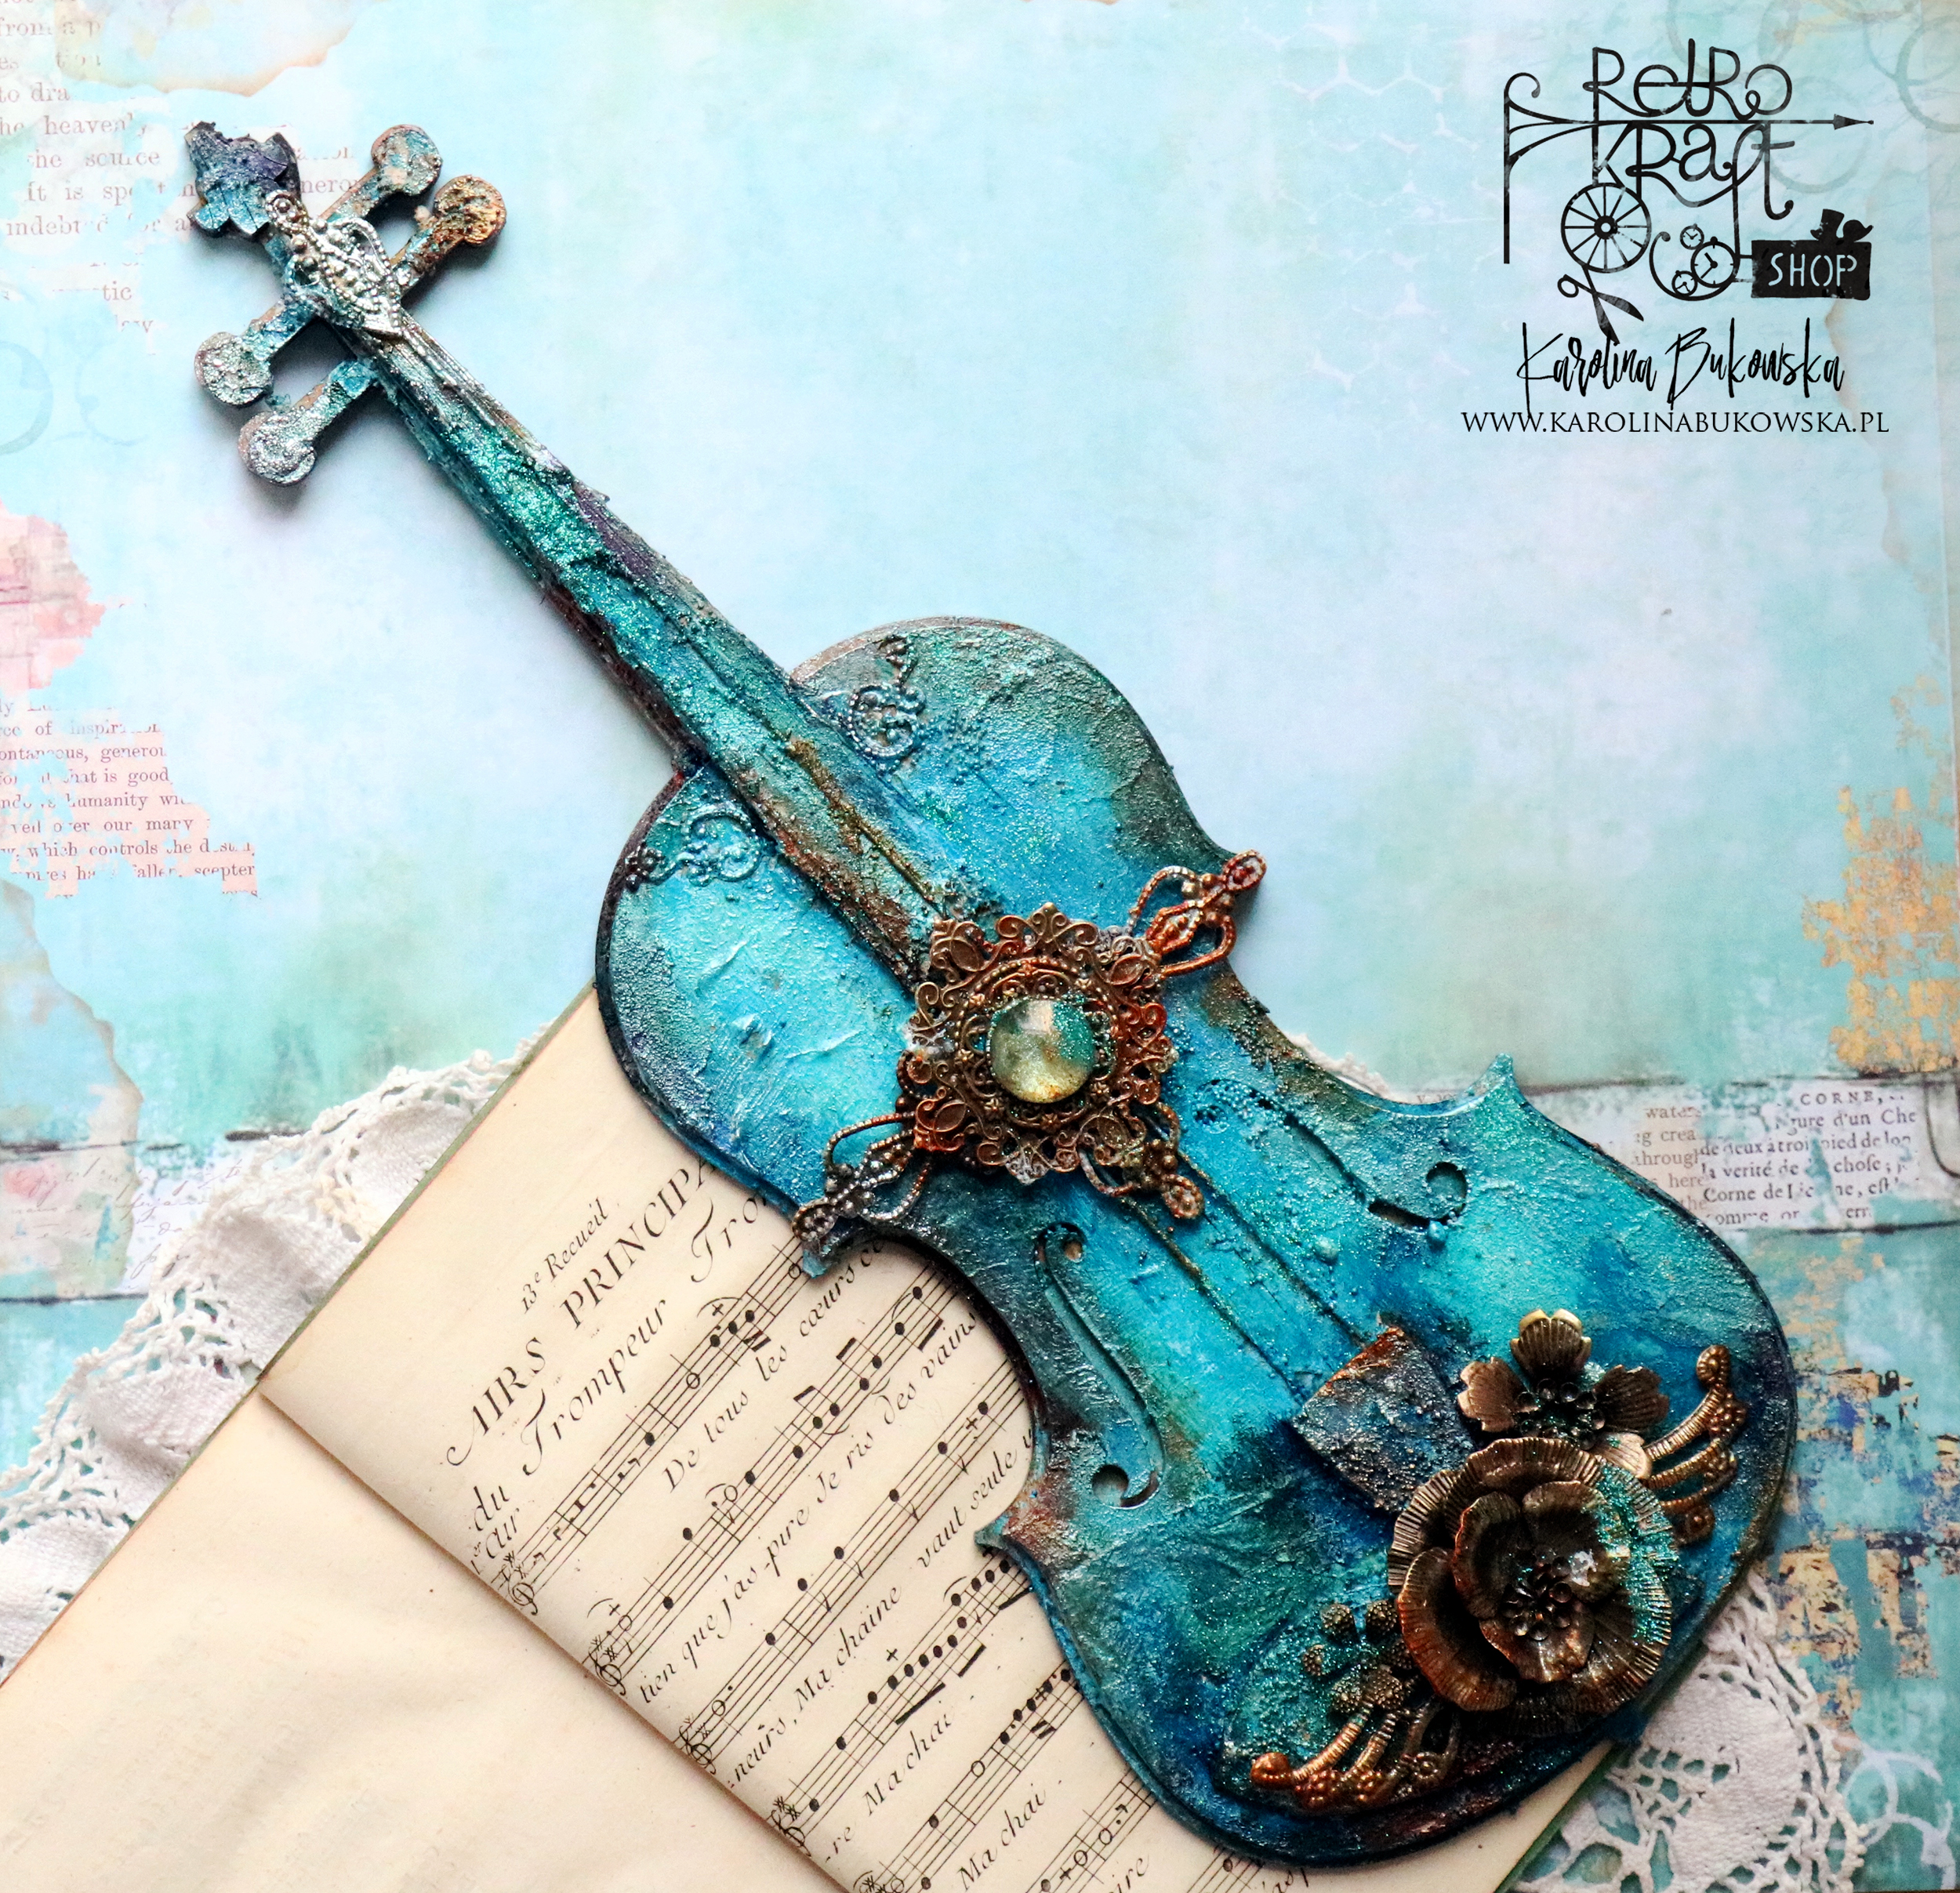 Alterowane skrzypce / Altered violin